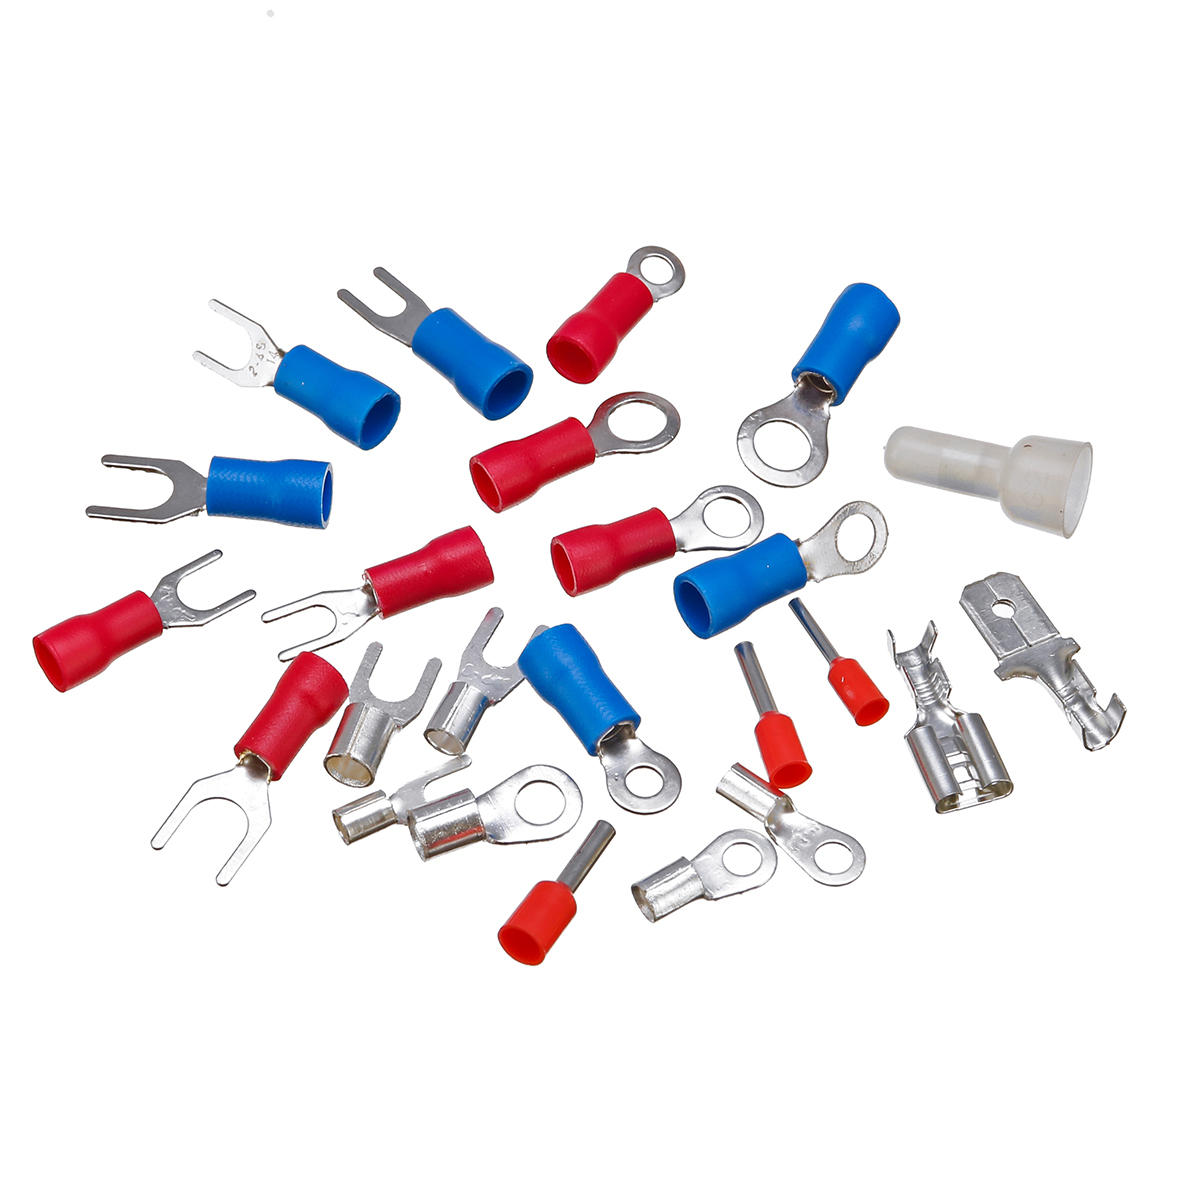 Excellway® EC04 1200pcs Assorted Crimp Terminals Set Insulated Electrical Wiring Connectors - 6